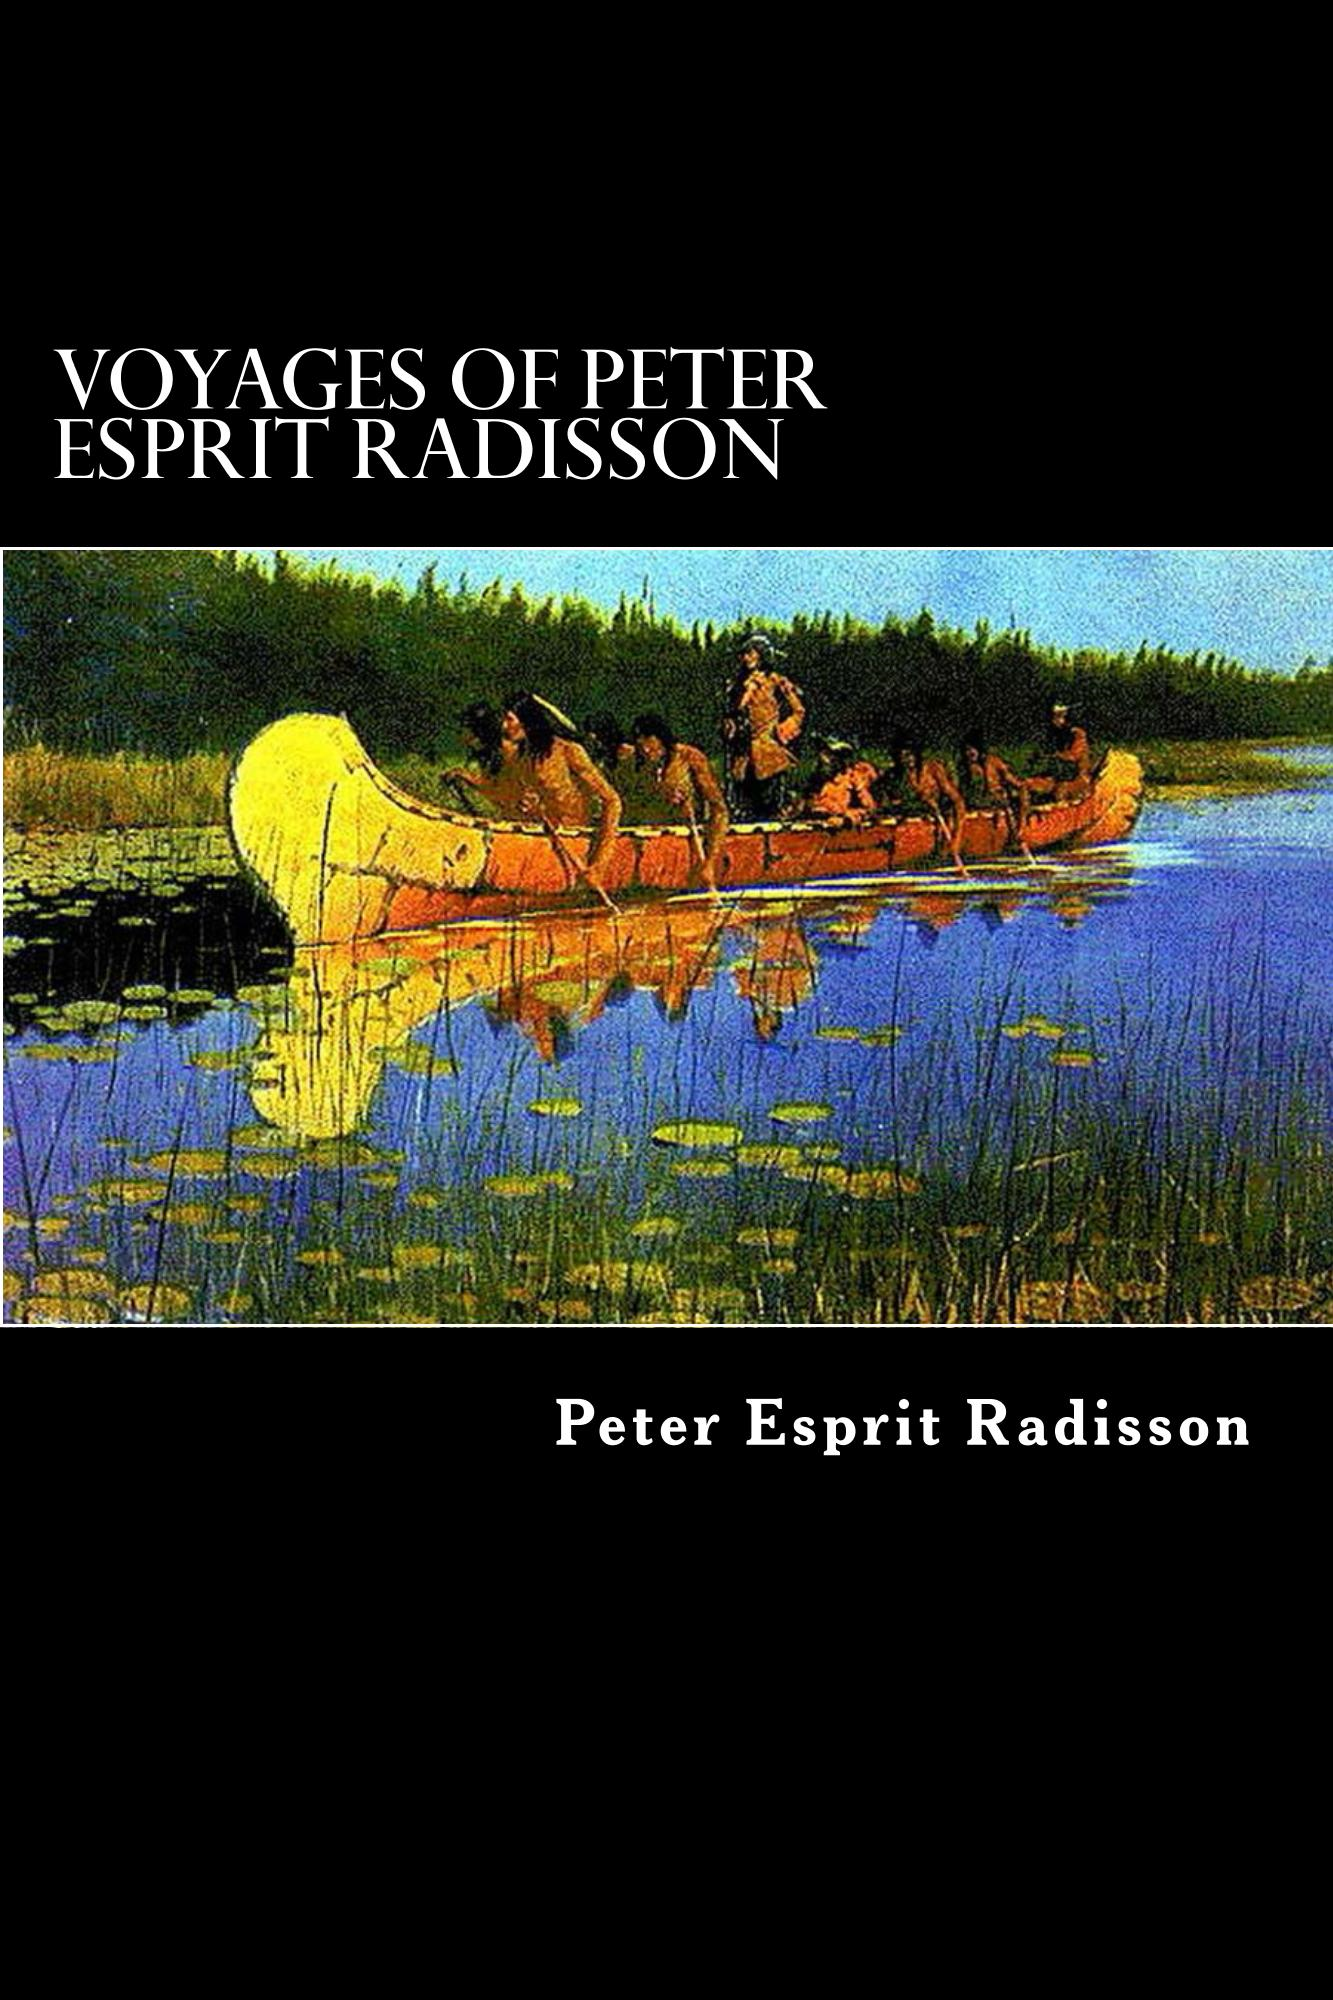 Voyages of  Peter Esprit Radisson By: Peter Esprit Radisson